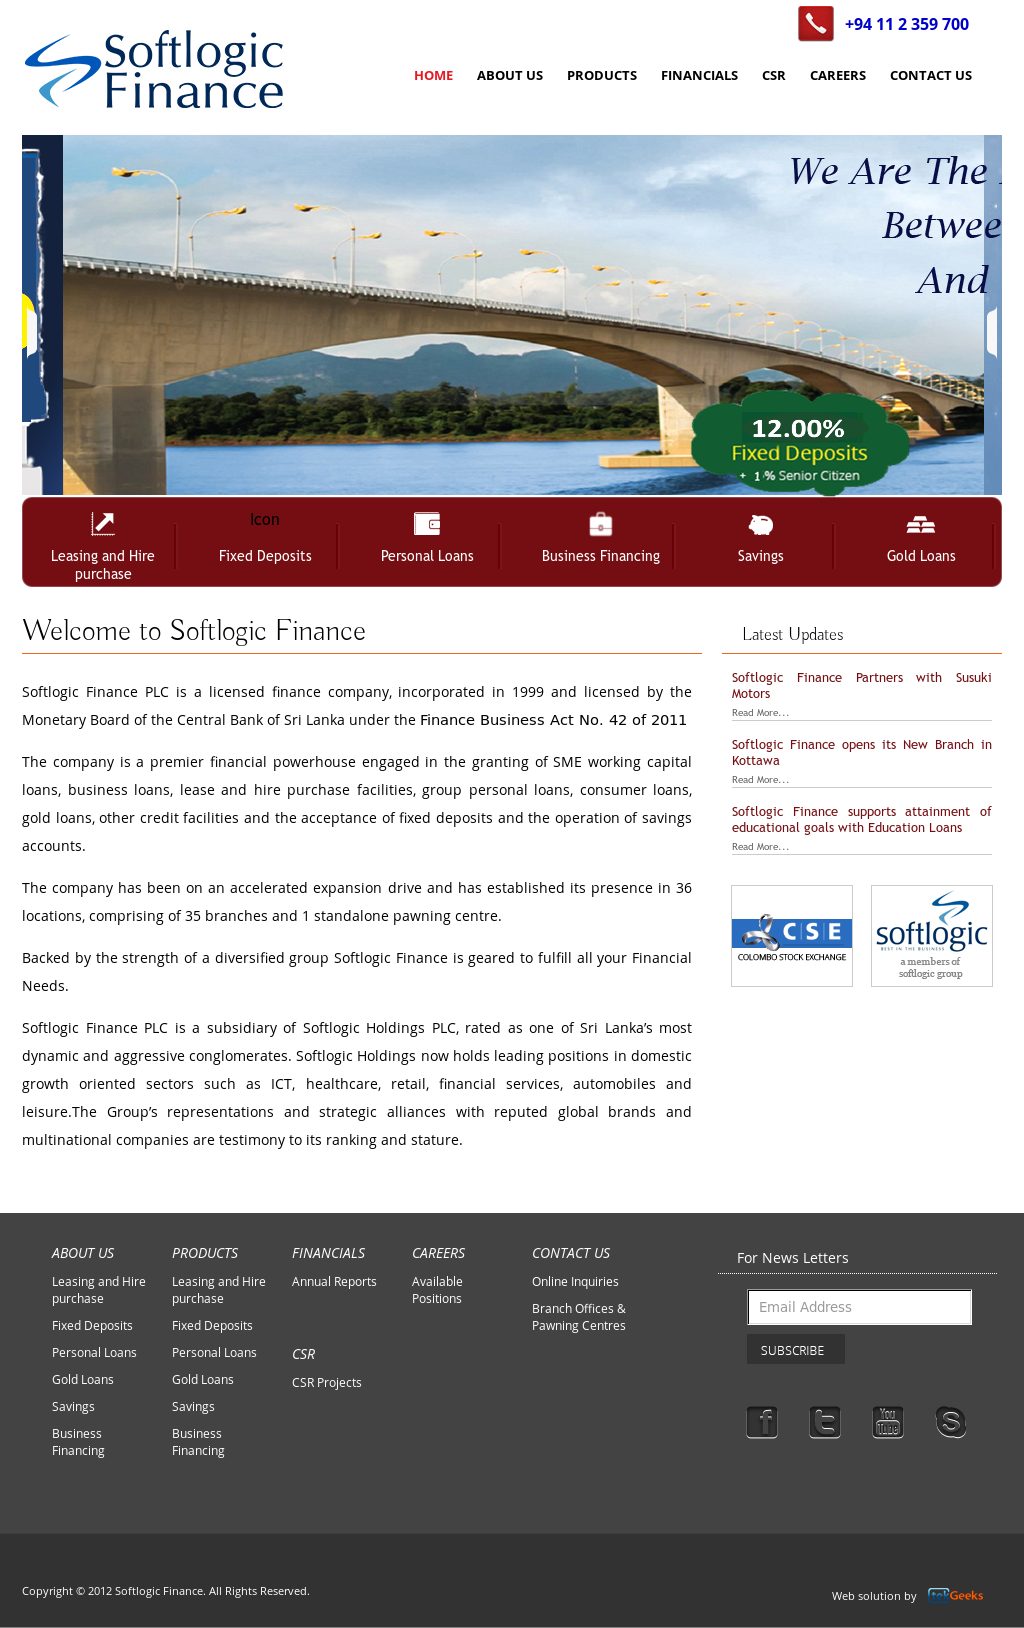 Softlogic Finance Competitors, Revenue and Employees - Owler Company